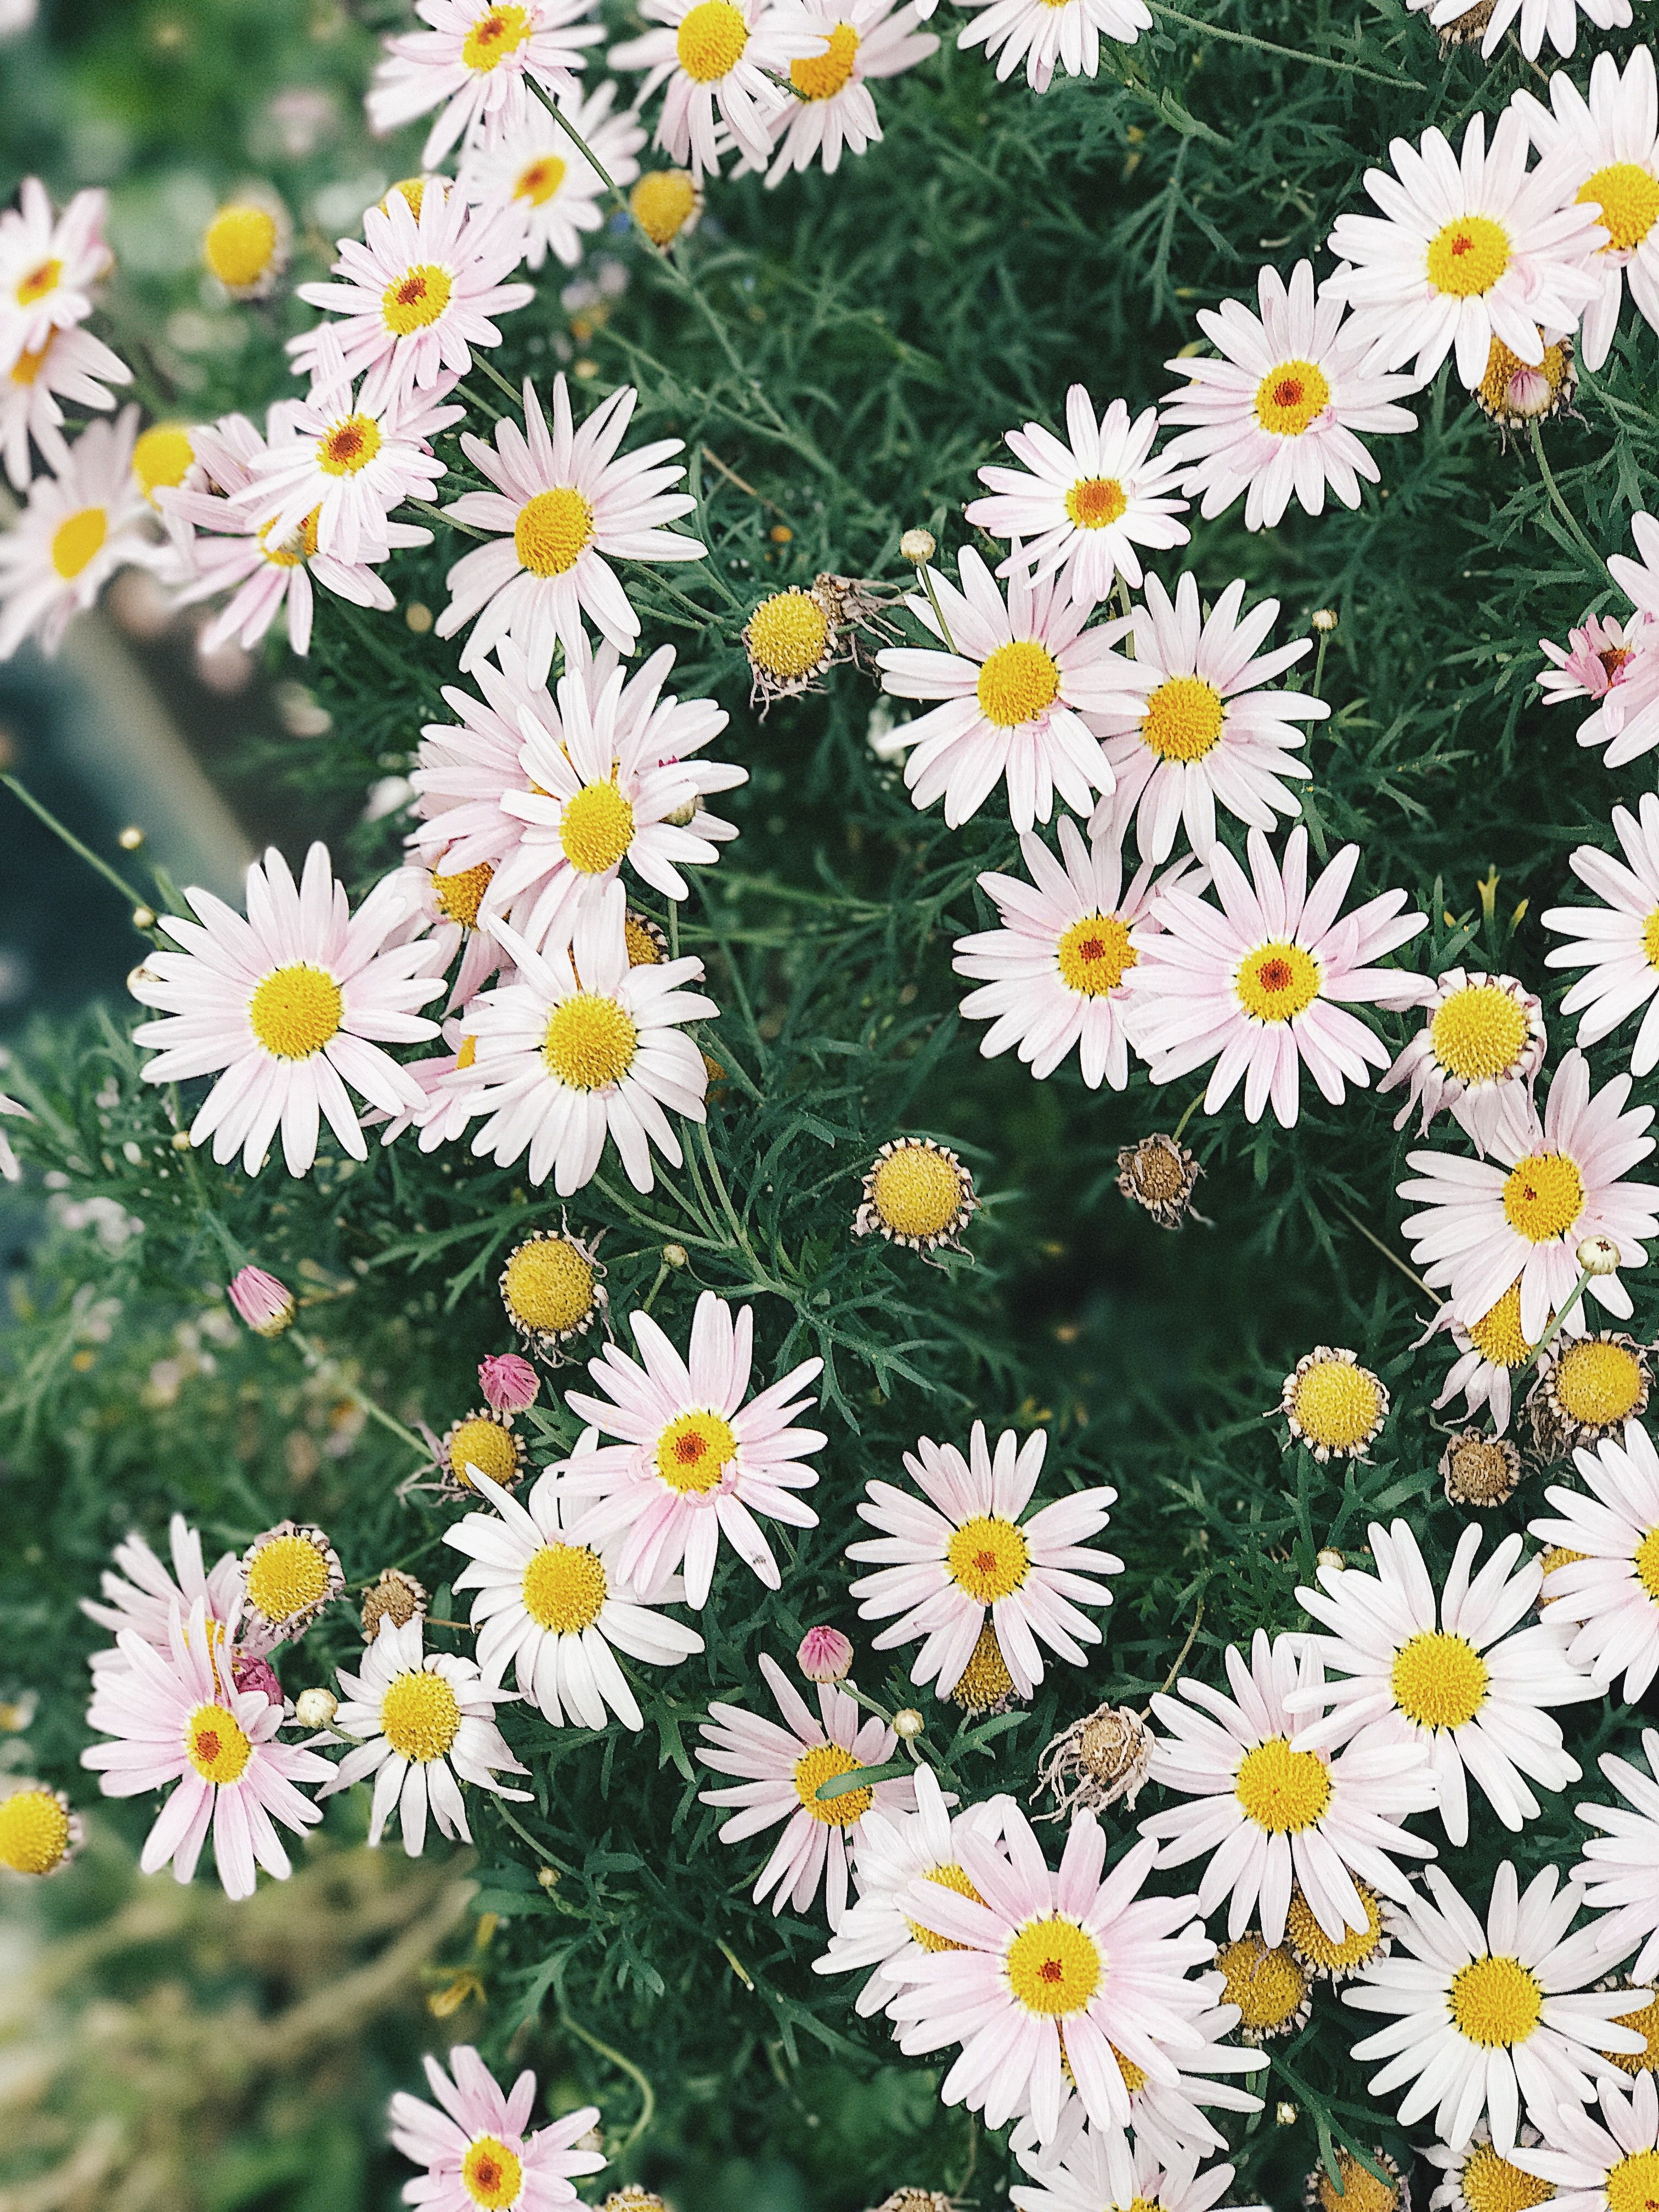 Cluster of daisies wallpaper for iPhone and Android